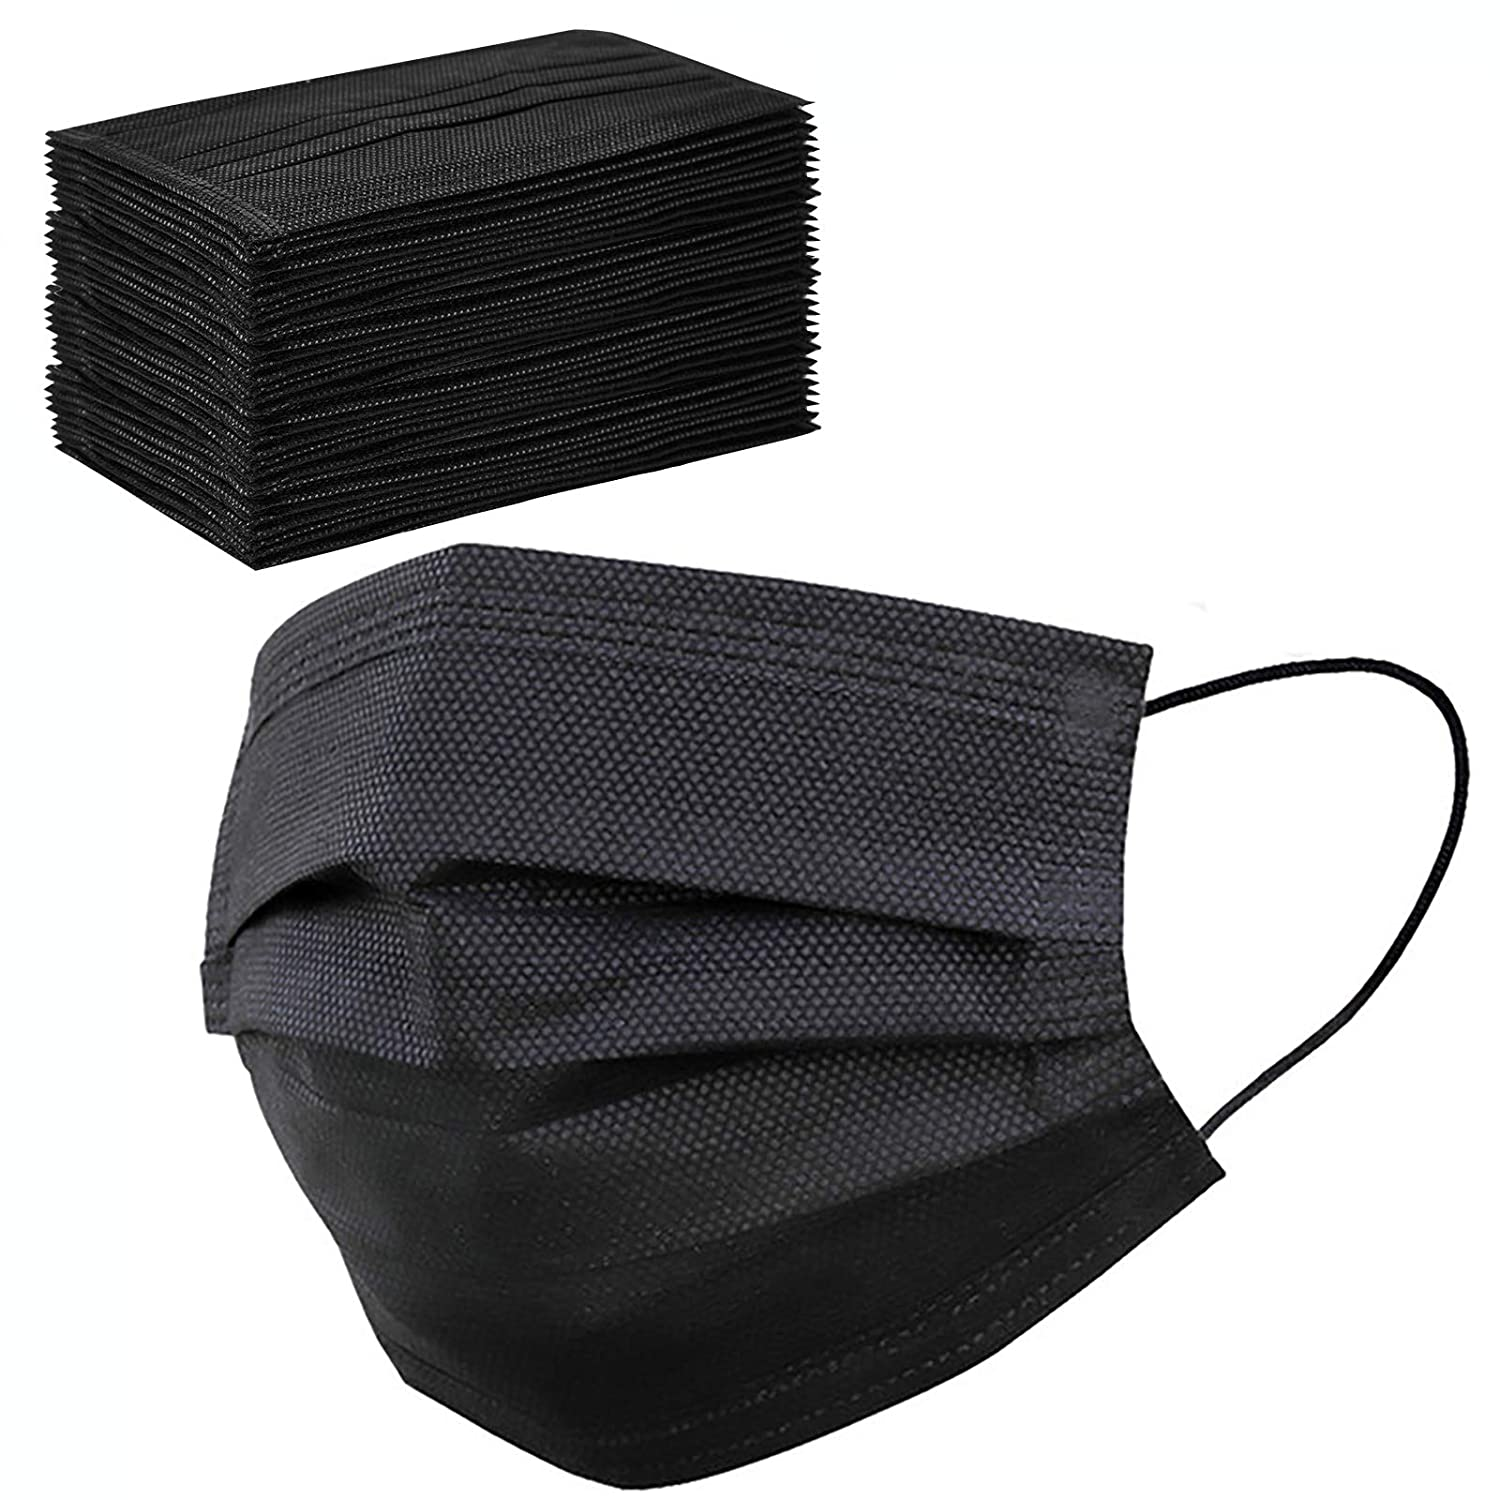 OBBO Black Disposable Face mask Adult KF94 face mask 4 Layers Non-Woven Protective Face Covering 20PC